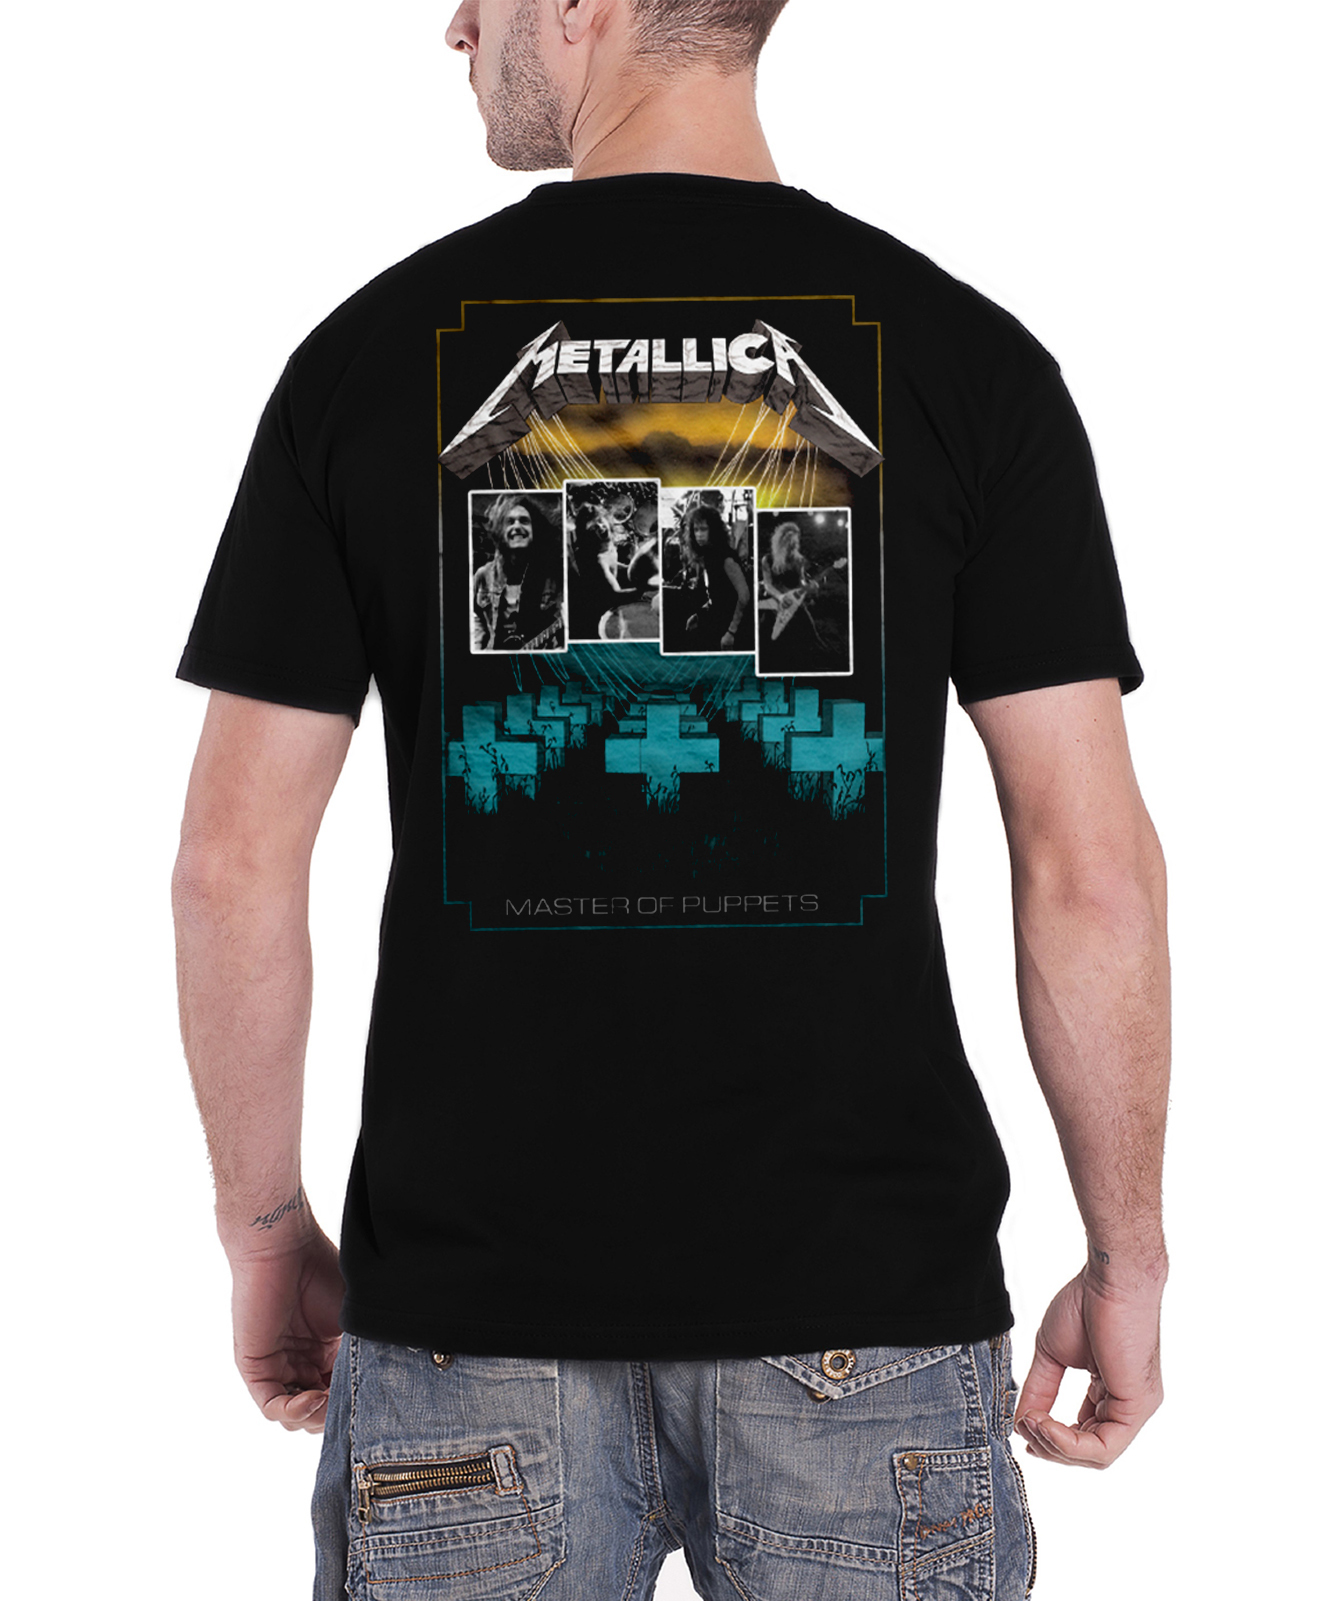 Official-Metallica-T-Shirt-Hardwired-Justice-for-all-RTL-band-logo-mens-new Indexbild 77